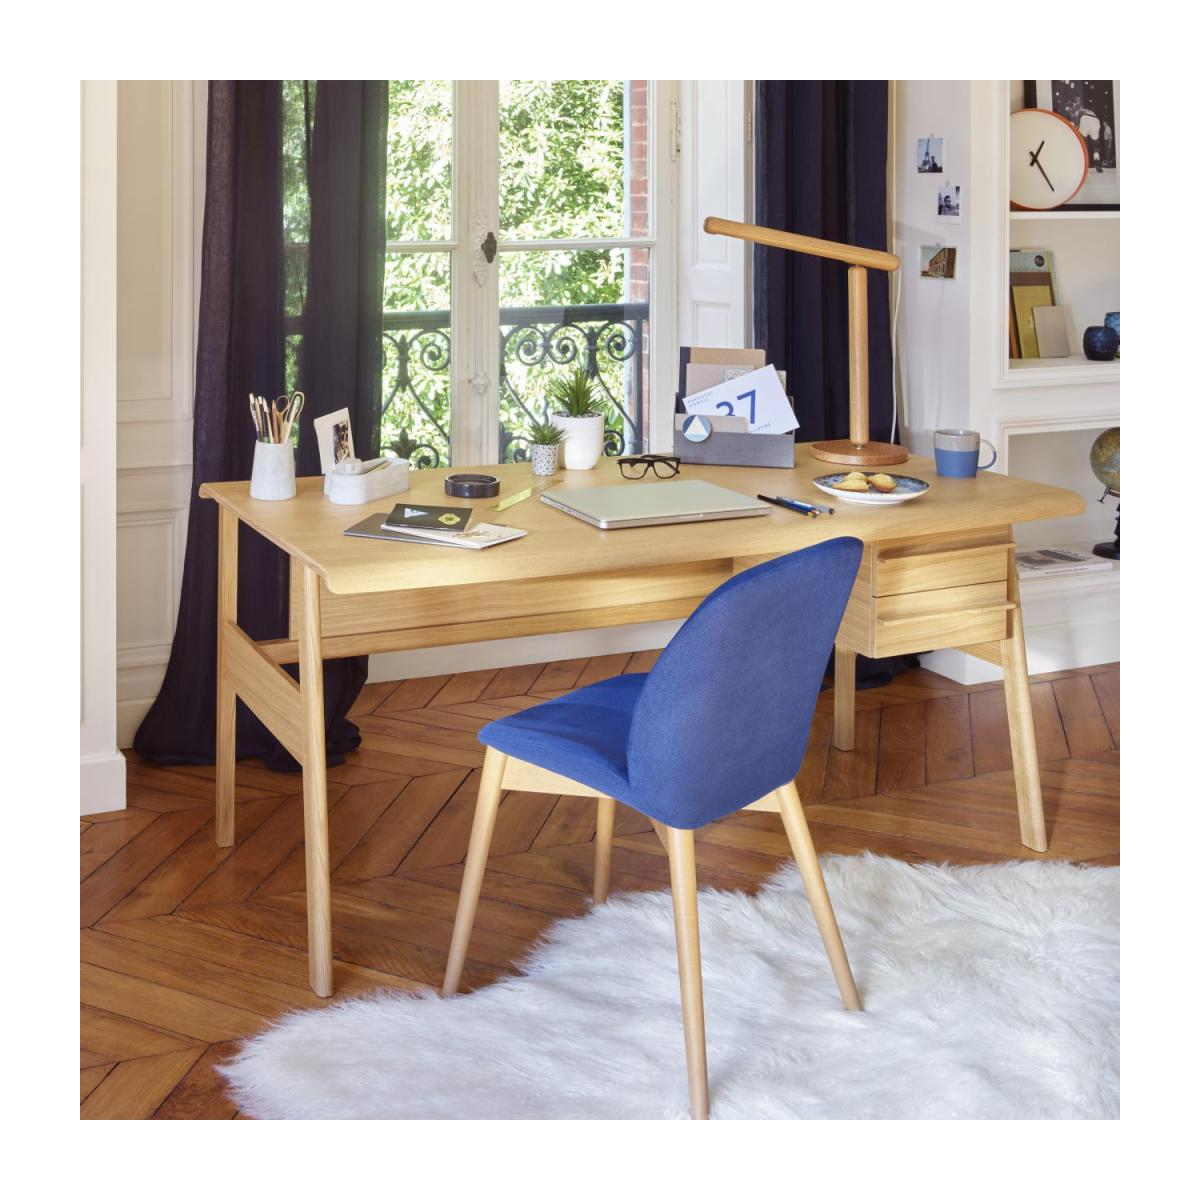 Big oak desk - Design by Joachim Jirou Najou n°2